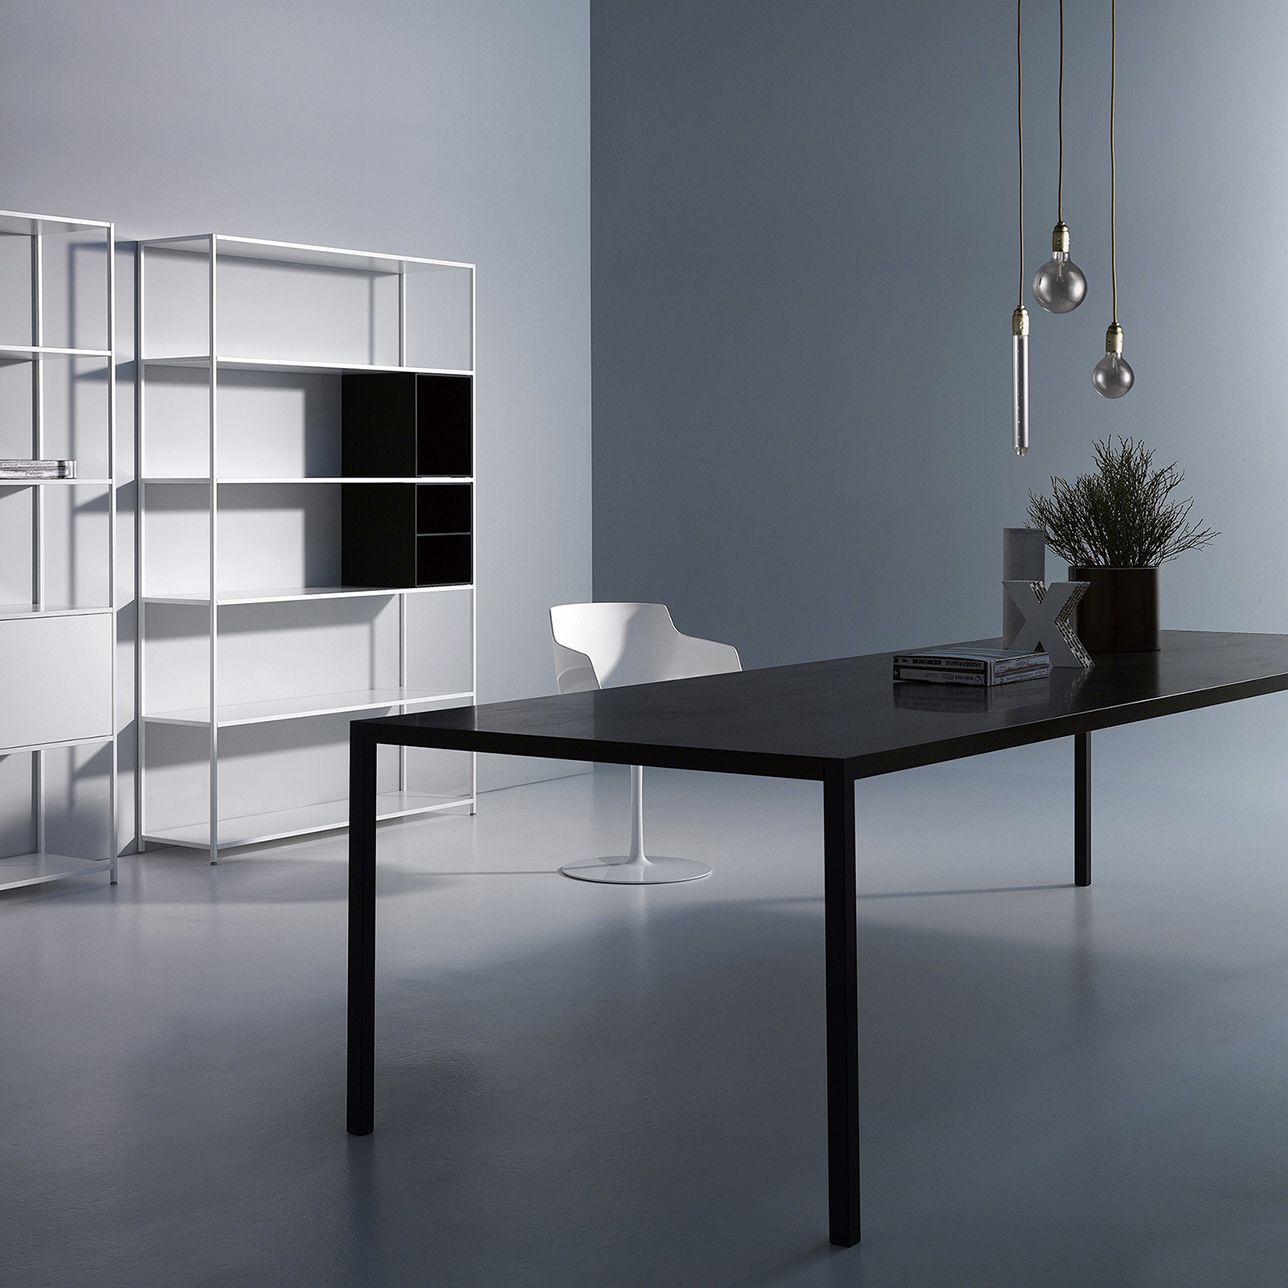 italian furniture brand. Aram Is The Exclusive UK Dealer For Iconic Italian Furniture Brand MDF Italia With Products From Some Of Most Renowned Contemporary Designers.